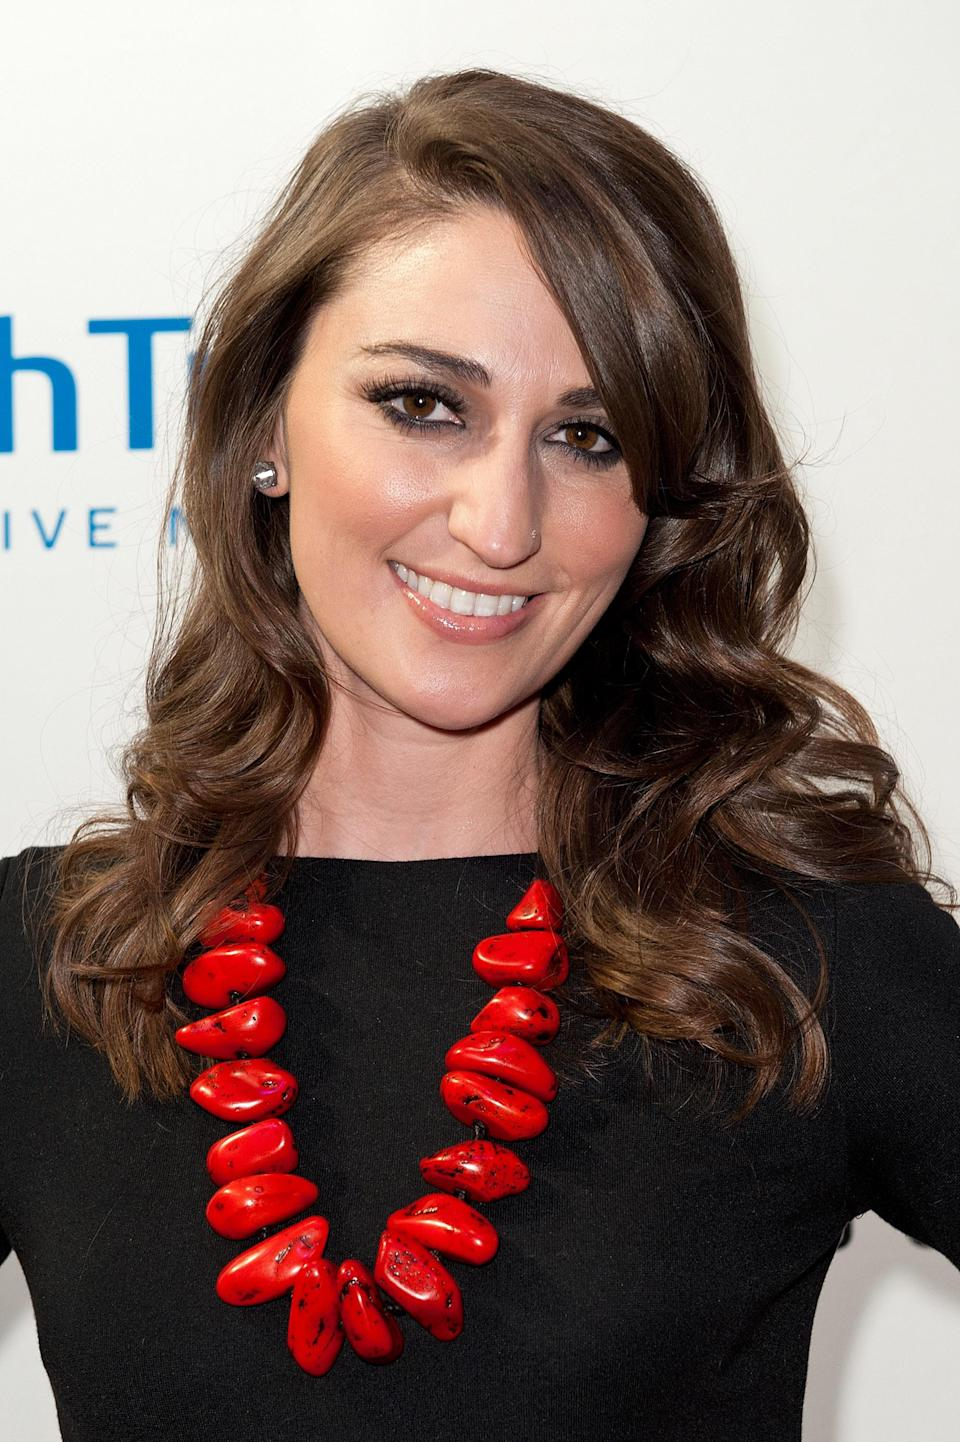 "<b>Sara Bareilles:</b> ""‏I am so overwhelmed by the horrific events in Colorado. So sad for the victims and their families. Sending love and prayers. #aurora "" (Photo by D Dipasupil/Getty Images)"